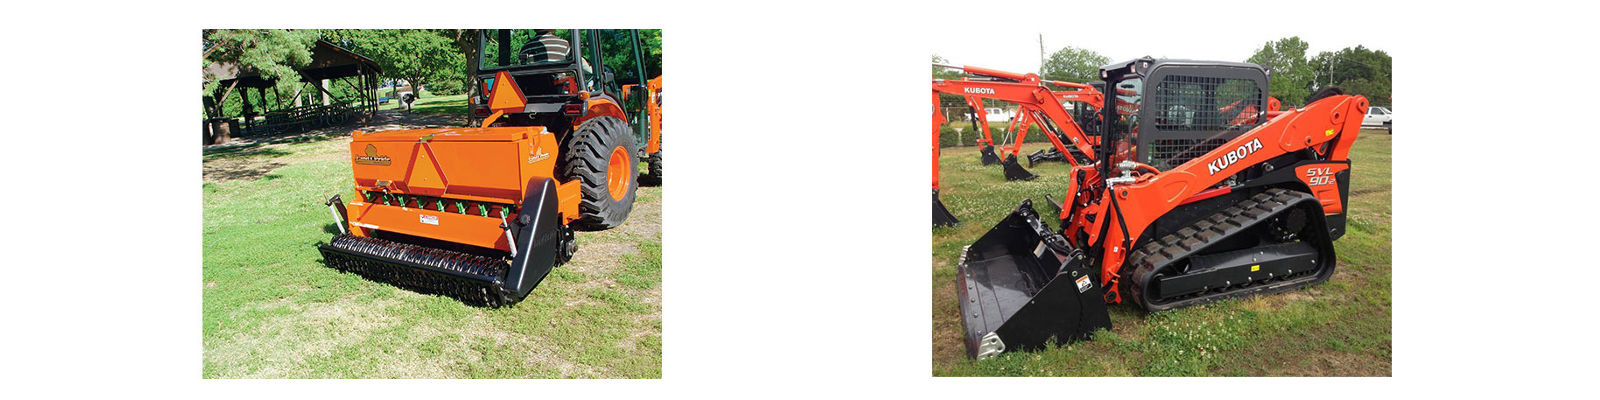 Earthmoving equipment rentals in Whitley & Kosciusko Counties